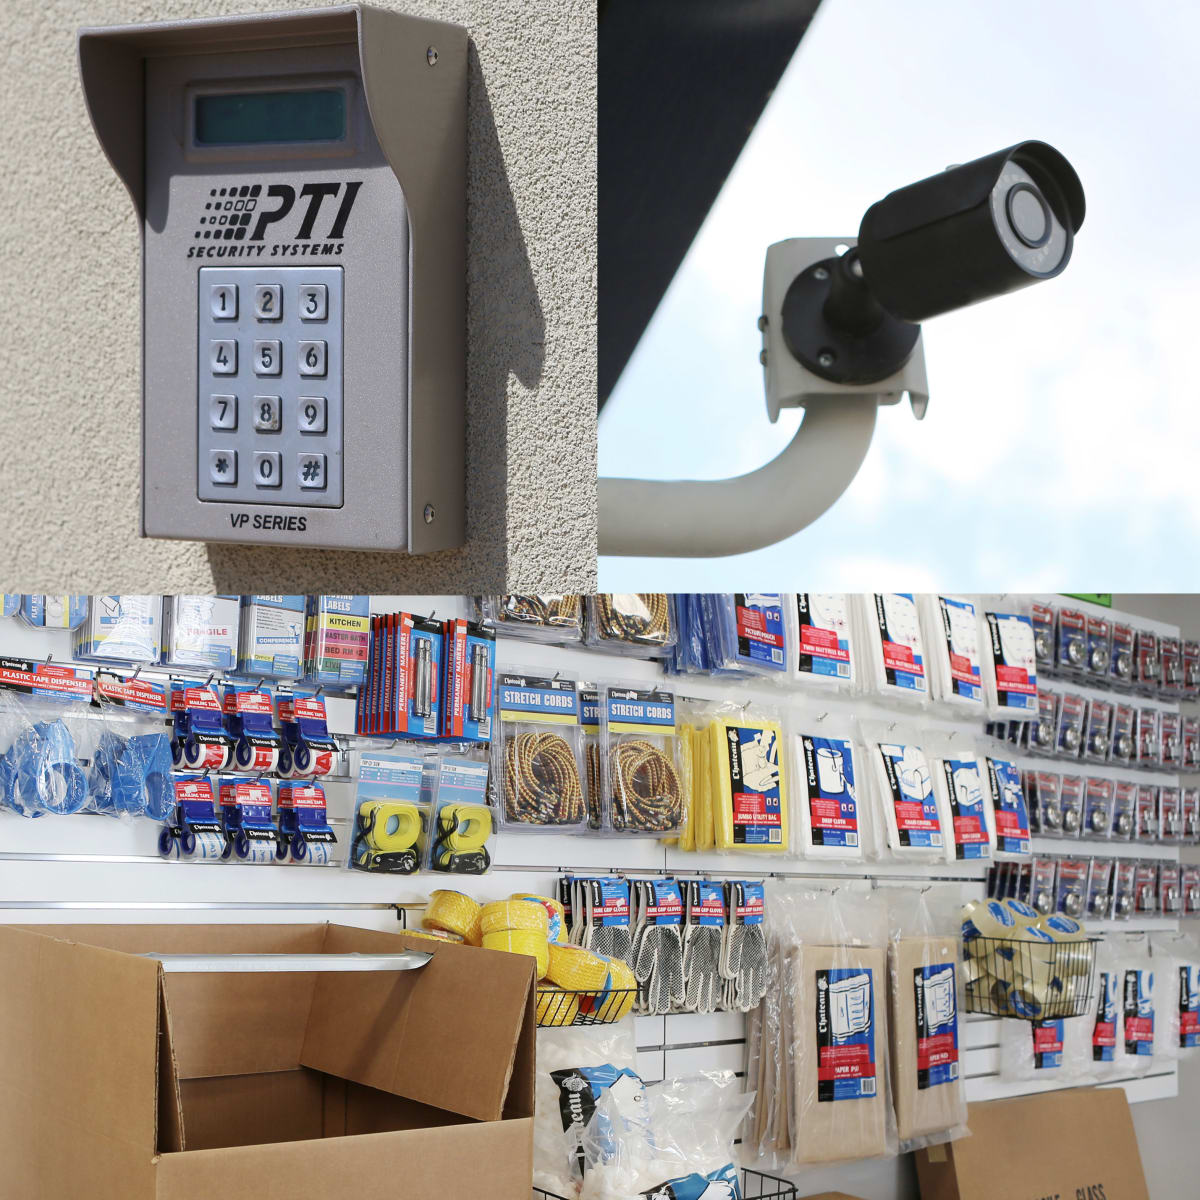 We provide 24 hour security monitoring and sell various moving and packing supplies at Midgard Self Storage in Athens, Alabama